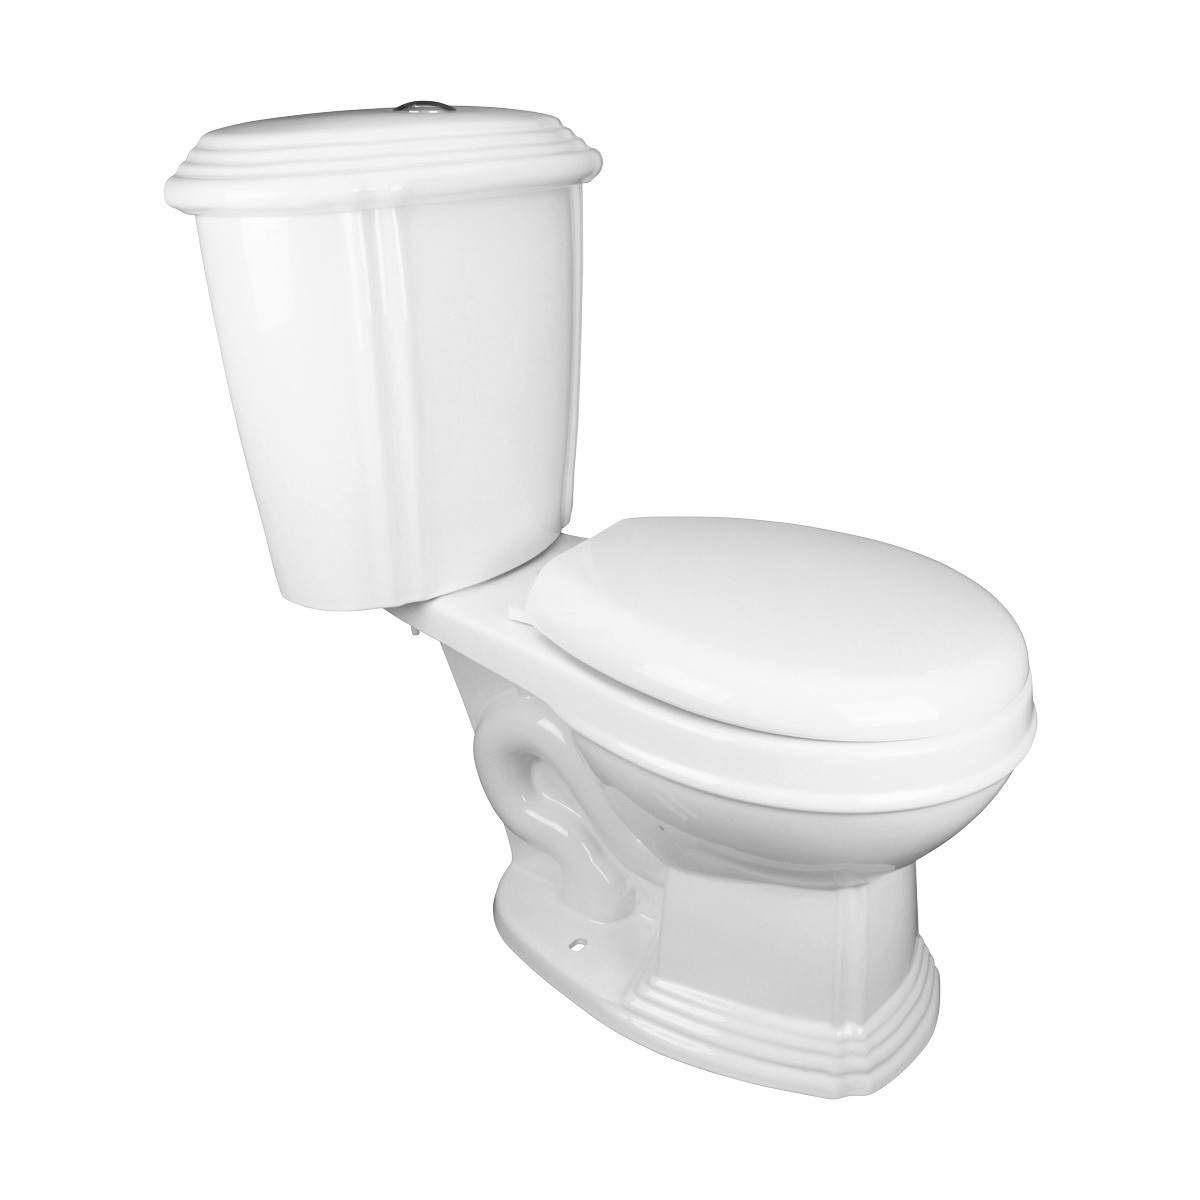 2 Inch Toilet Seat.  PRE White China Round Dual Flush Toilet Seat Included Sheffield Top Measures 31 3 4 inch